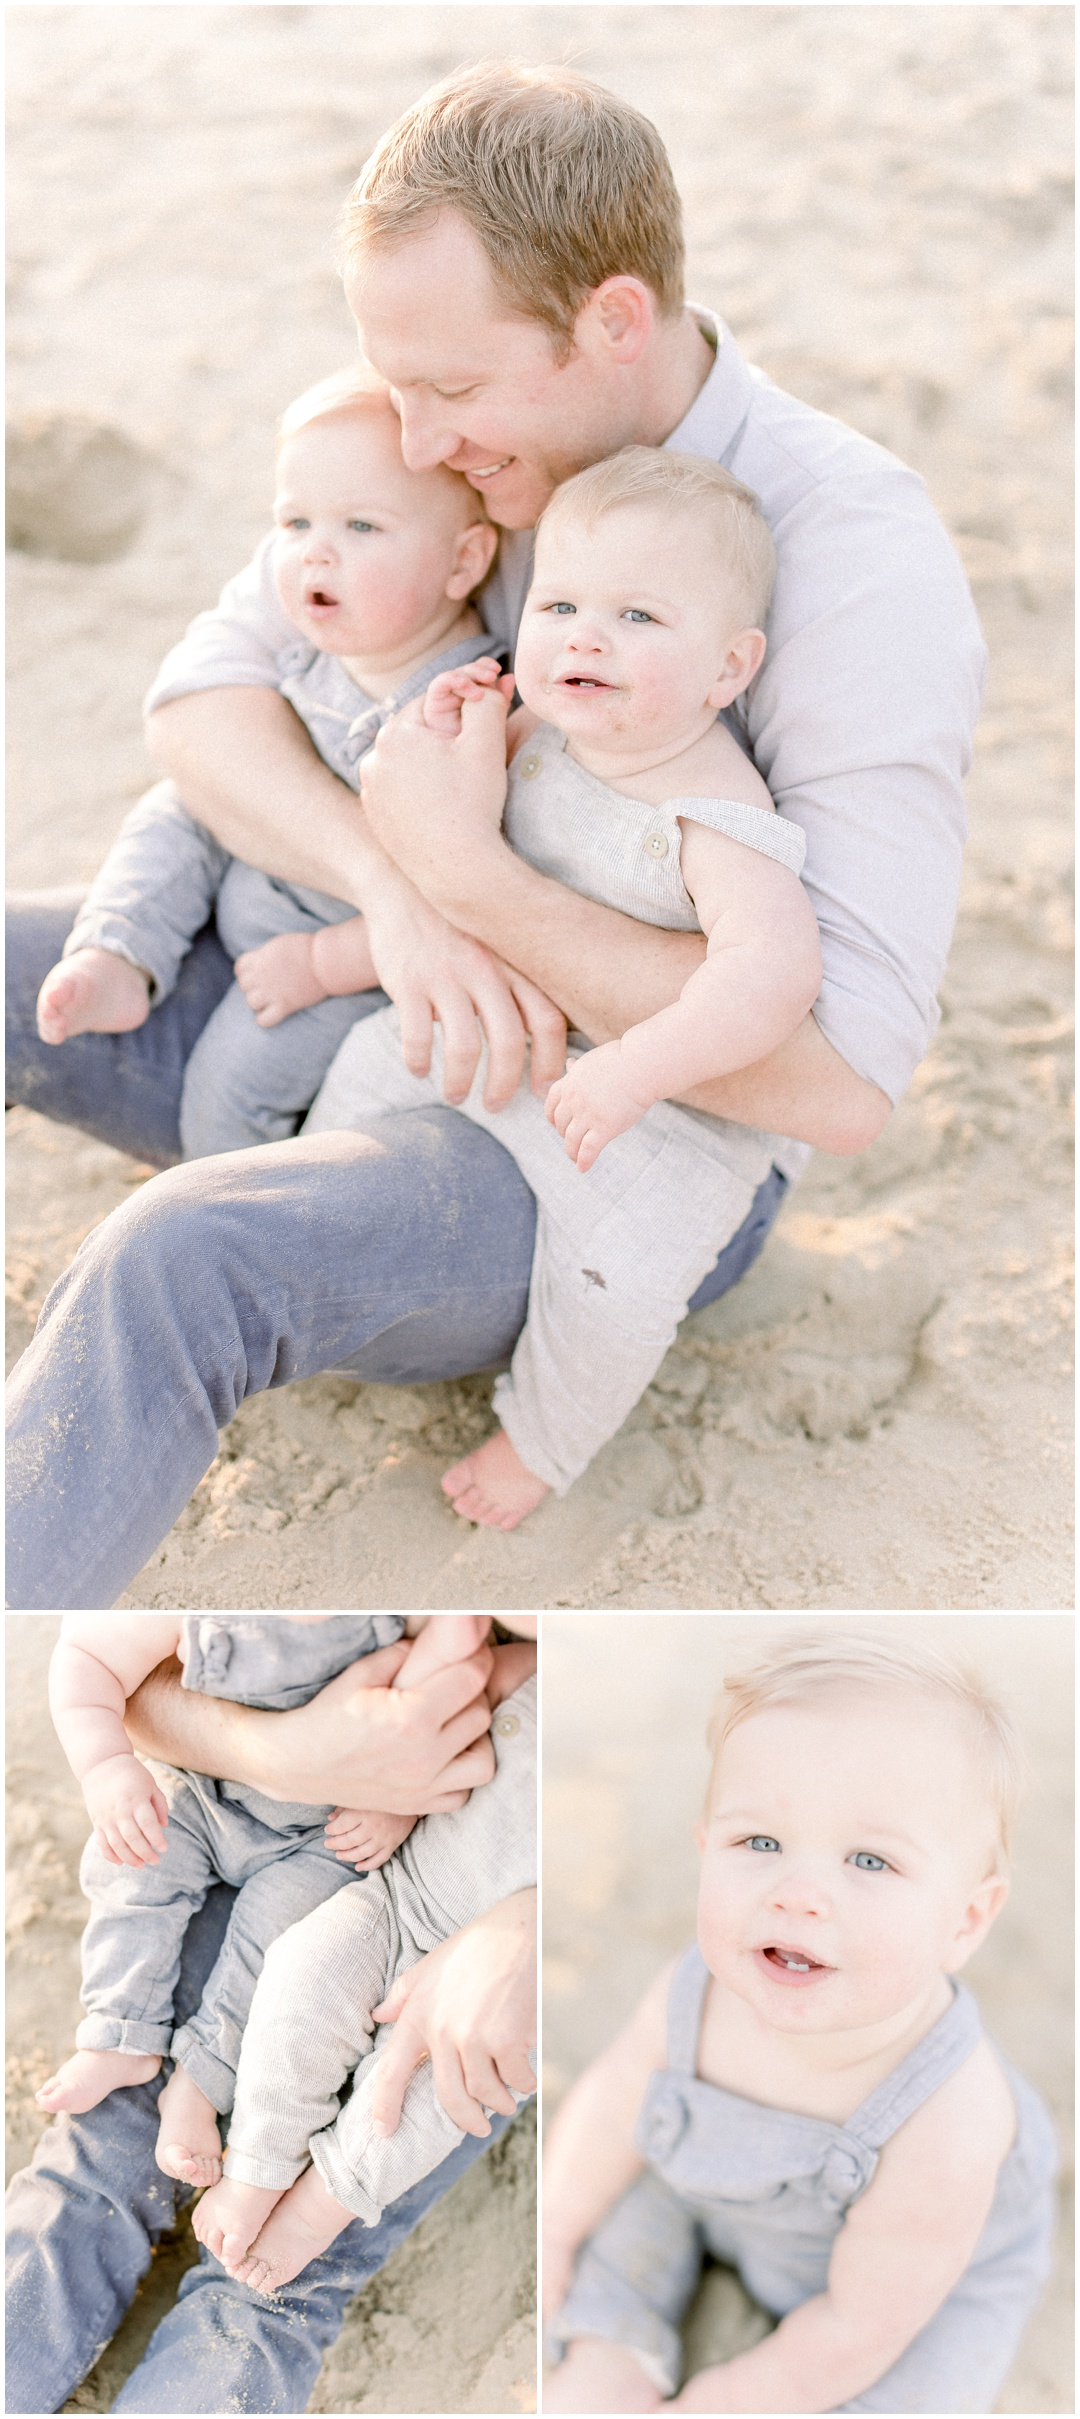 Newport_Beach_Newborn_Light_Airy_Natural_Photographer_Newport_Beach_Photographer_Orange_County_Family_Photographer_Cori_Kleckner_Photography_Huntington_Beach_Photographer_Family_OC_Newborn_Kelly_Bandak_Nik_Bandak__3513.jpg